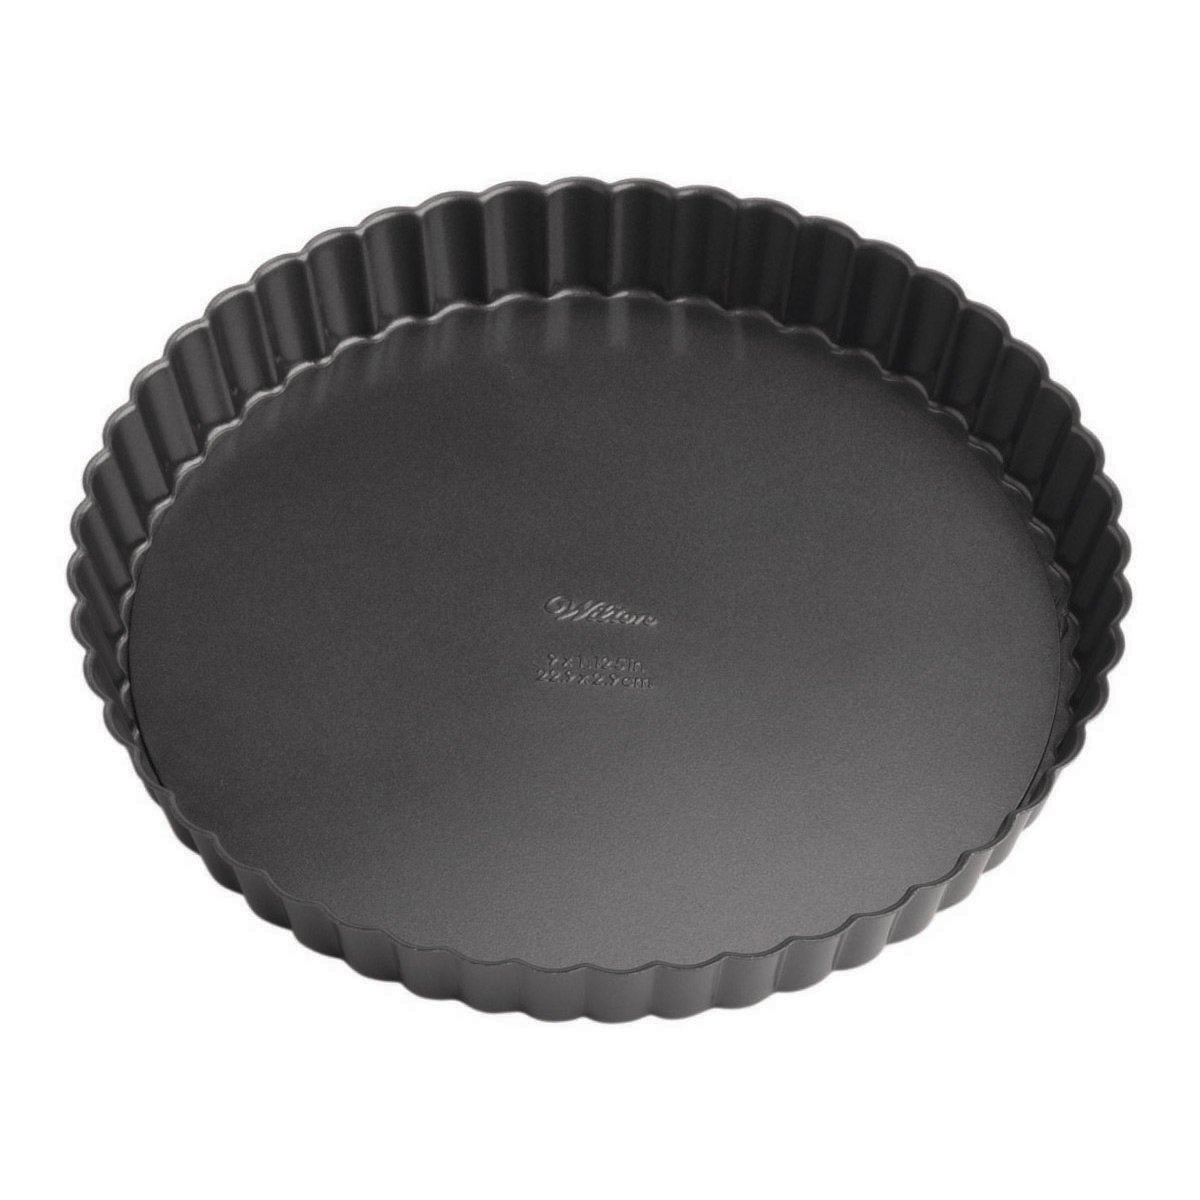 Wilton Perfect Results Premium Non-Stick Bakeware Round Tart and Quiche Pans, Sunday Brunch May Never be the Same Again, Fluted Edges Add a Touch of Flair, 9-Inch by Wilton